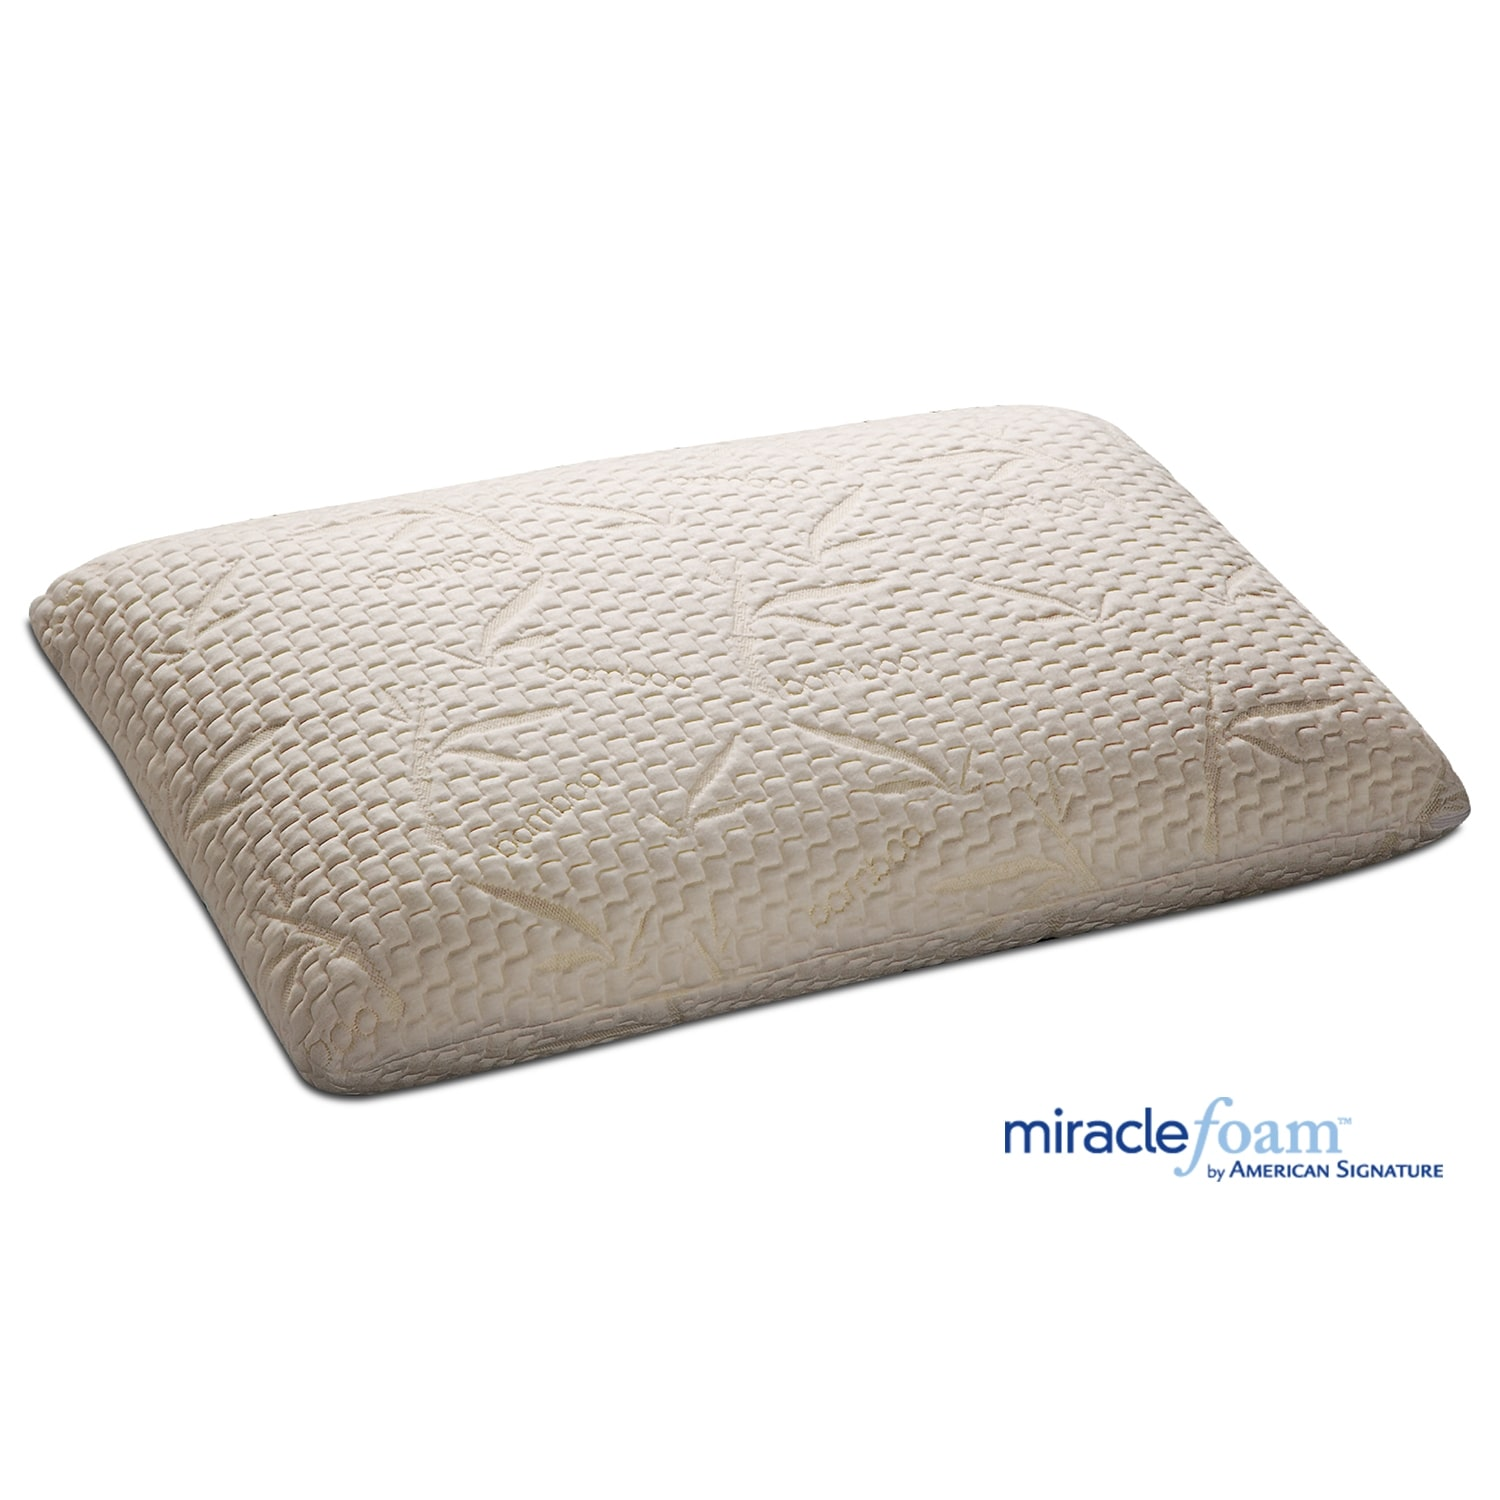 shop miracle foam mattresses american signature furniture